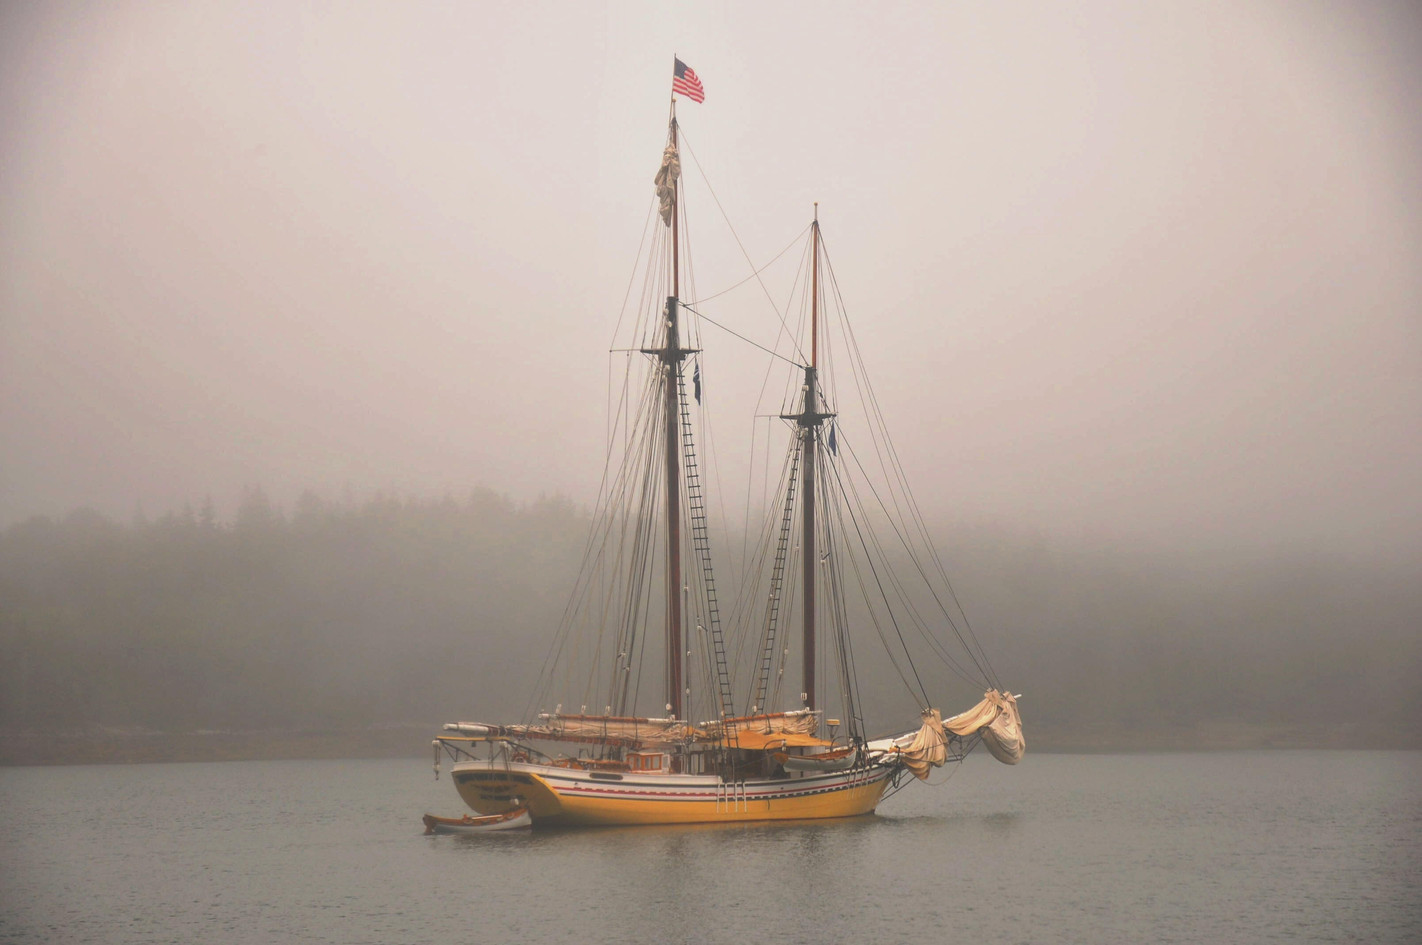 Heritage at anchor in the fog. Photo: Lydia Rolita